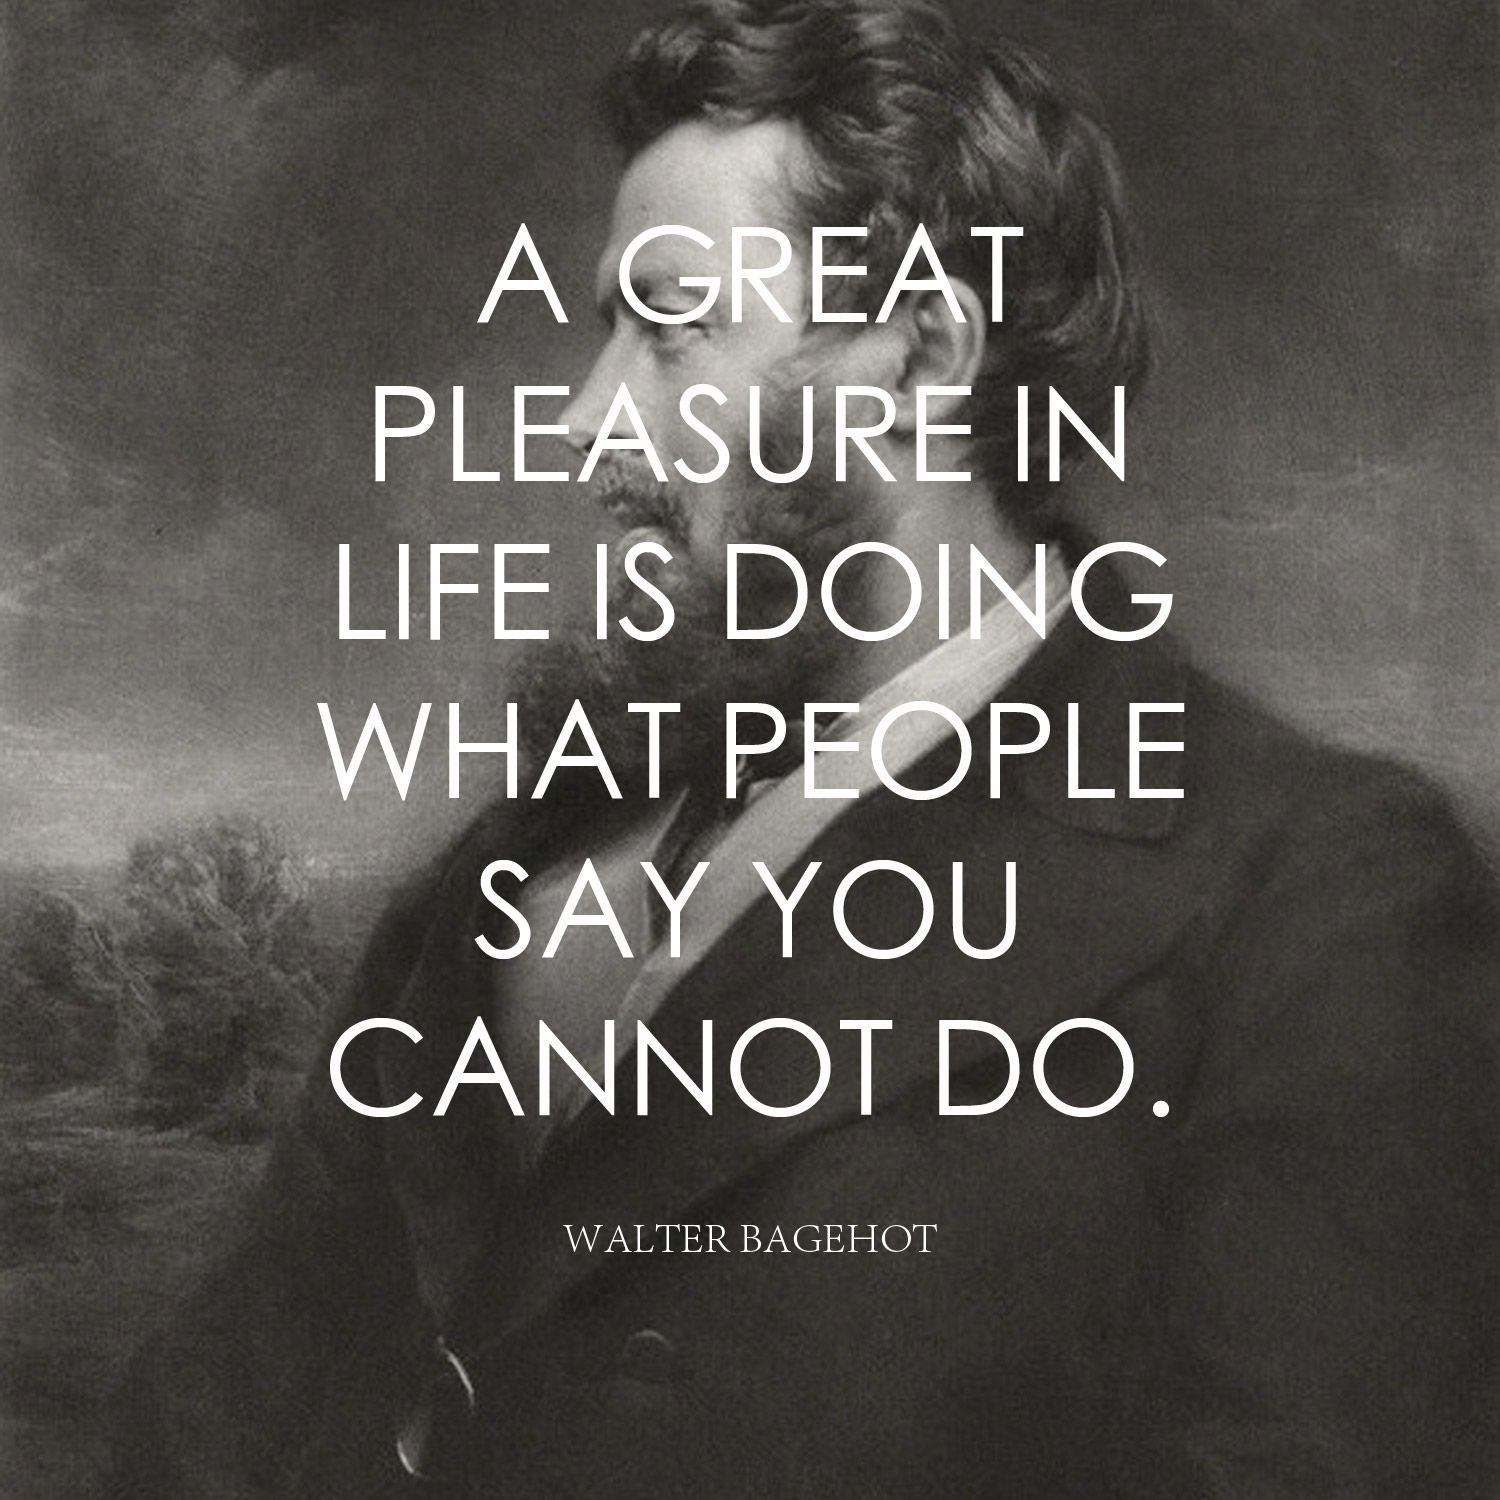 Lifes Great Quotes A Great Pleasure In Life Is Doing What People Say You Cannot Do